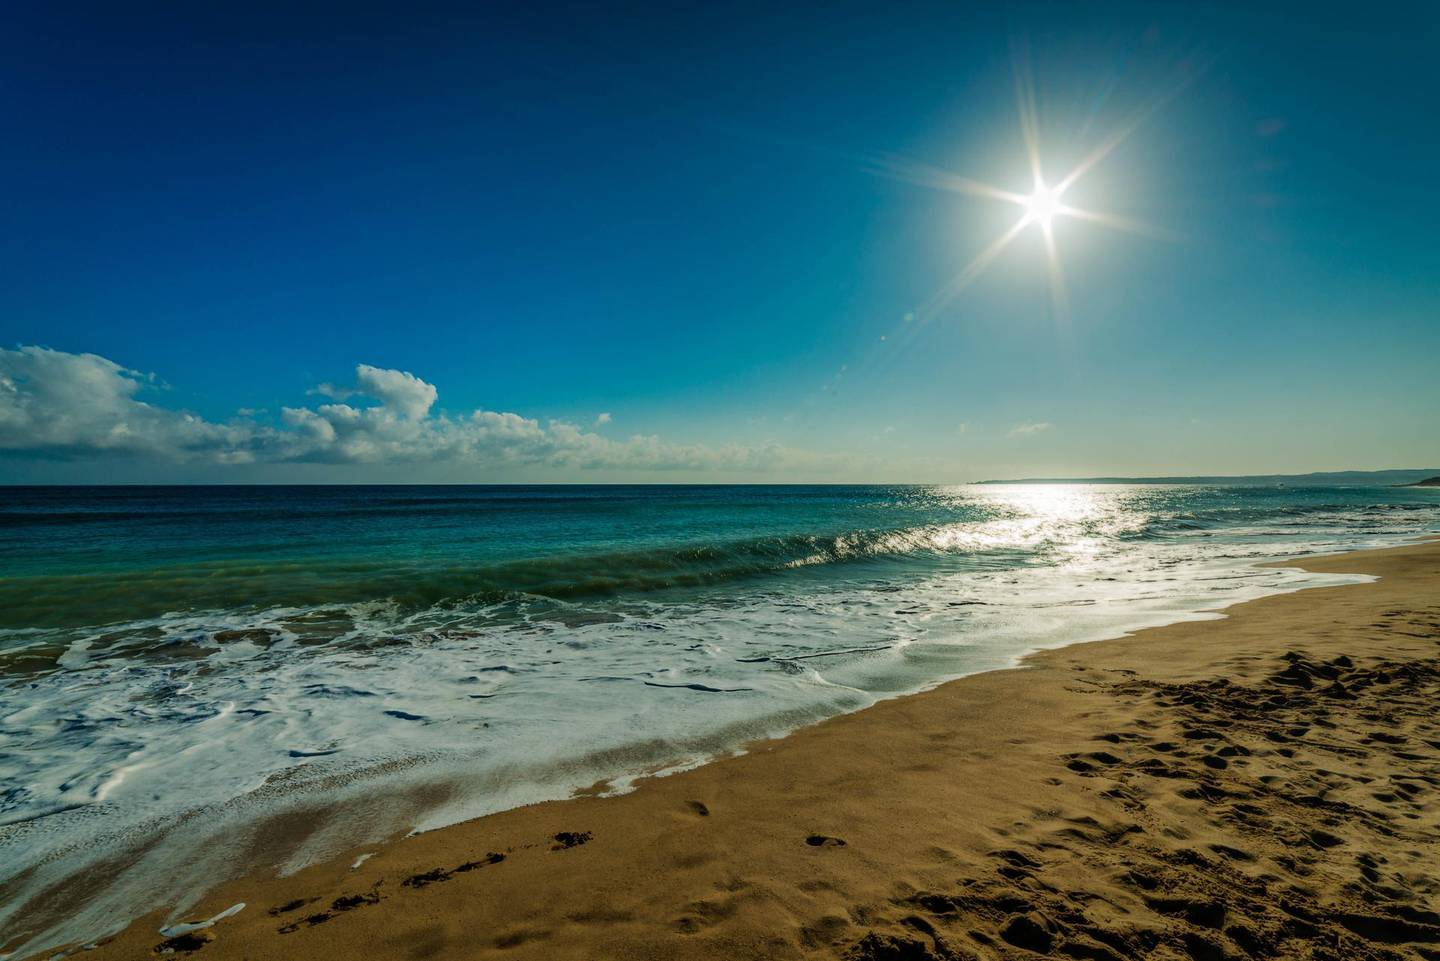 Kenting Beach. Getty Images